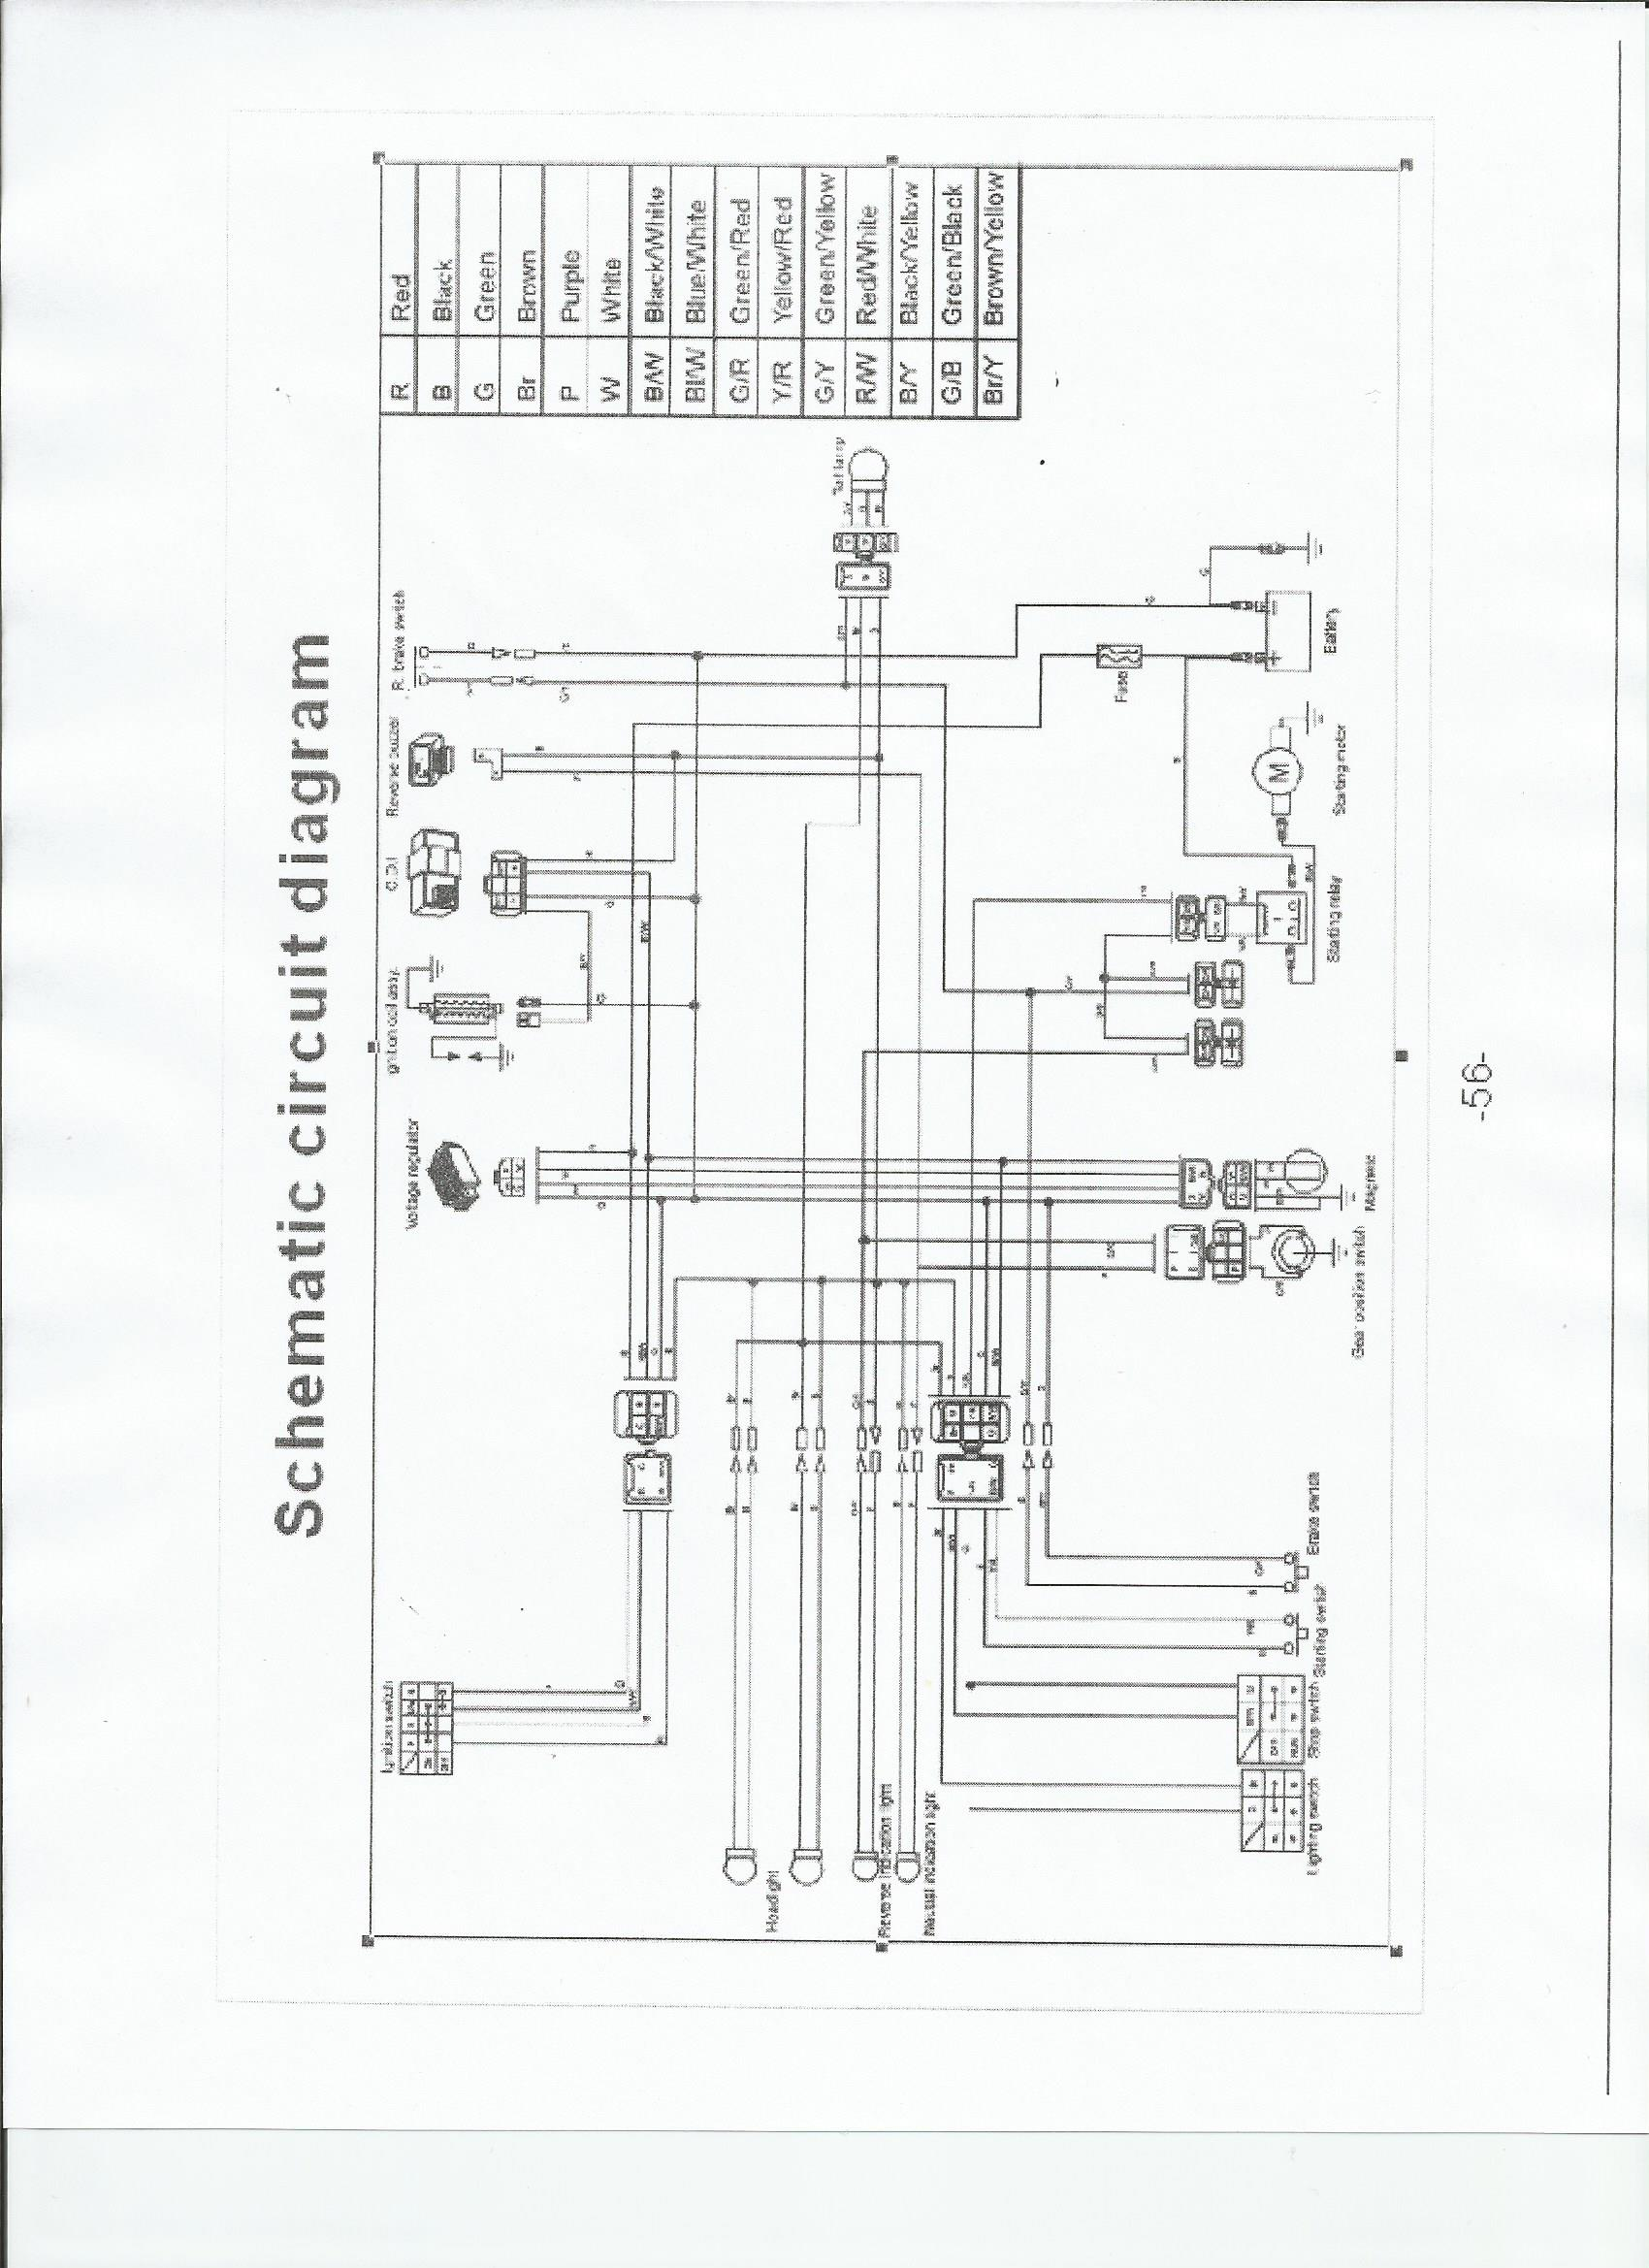 47F8B6 Toa Toa Atv 110 Wiring Diagram | Wiring Library